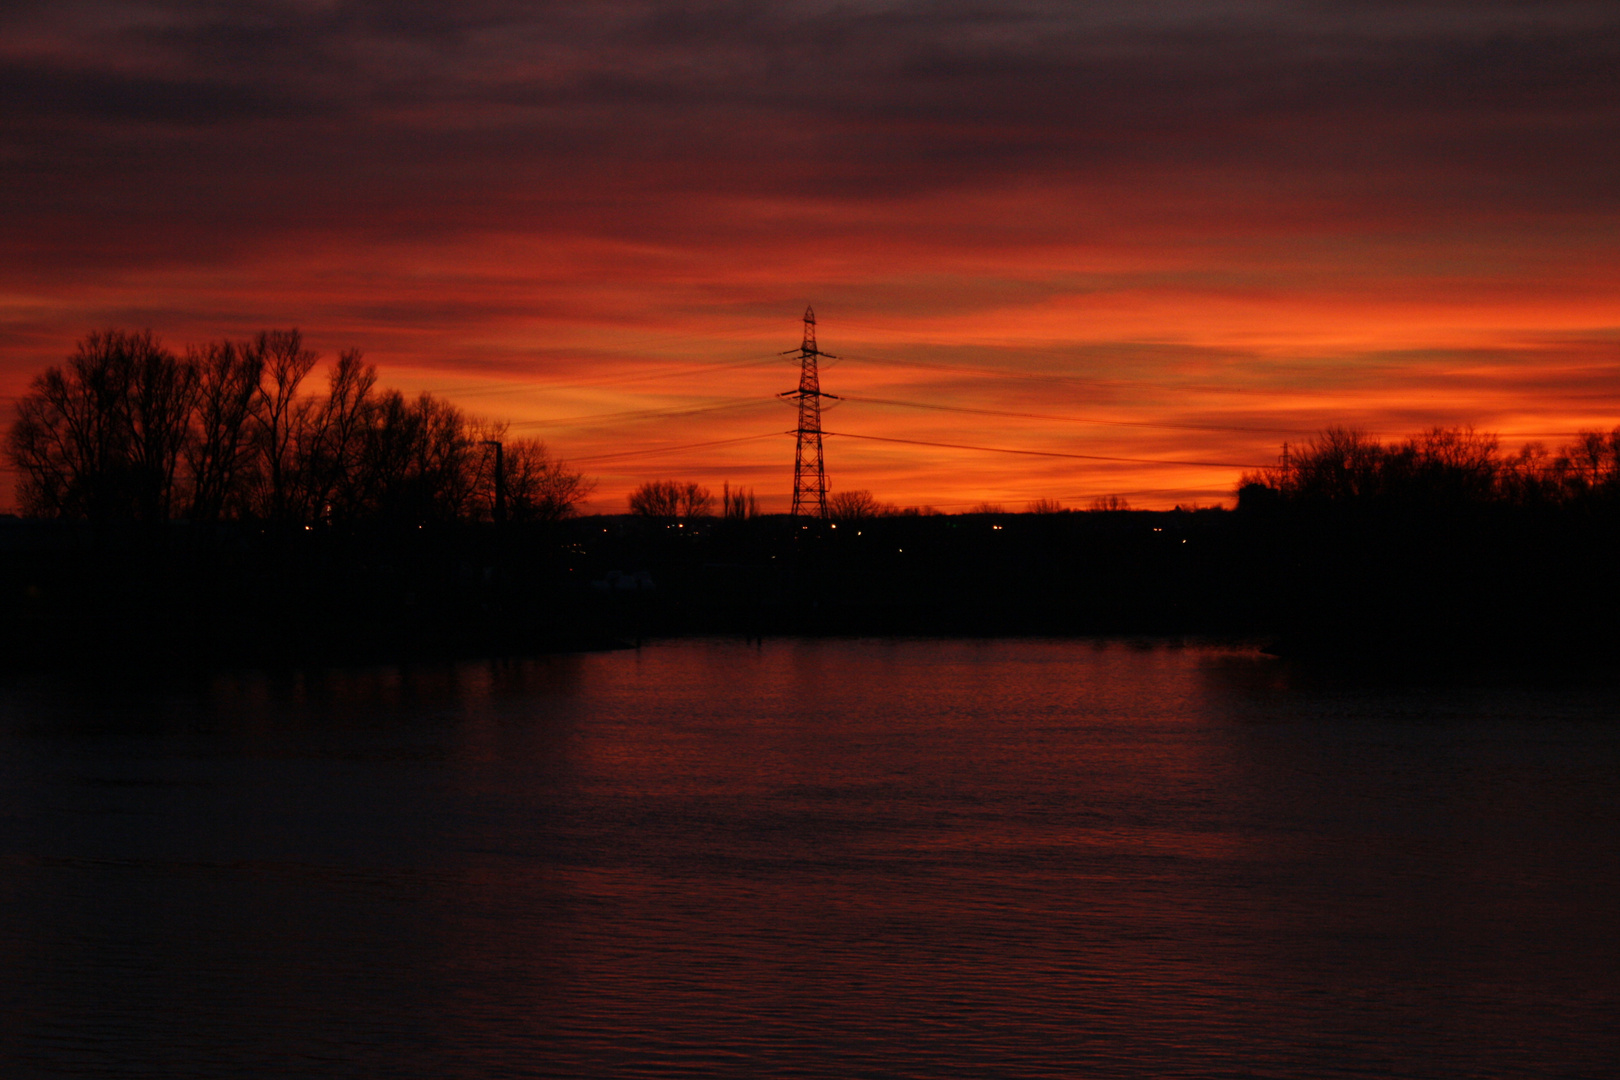 Red sky over water